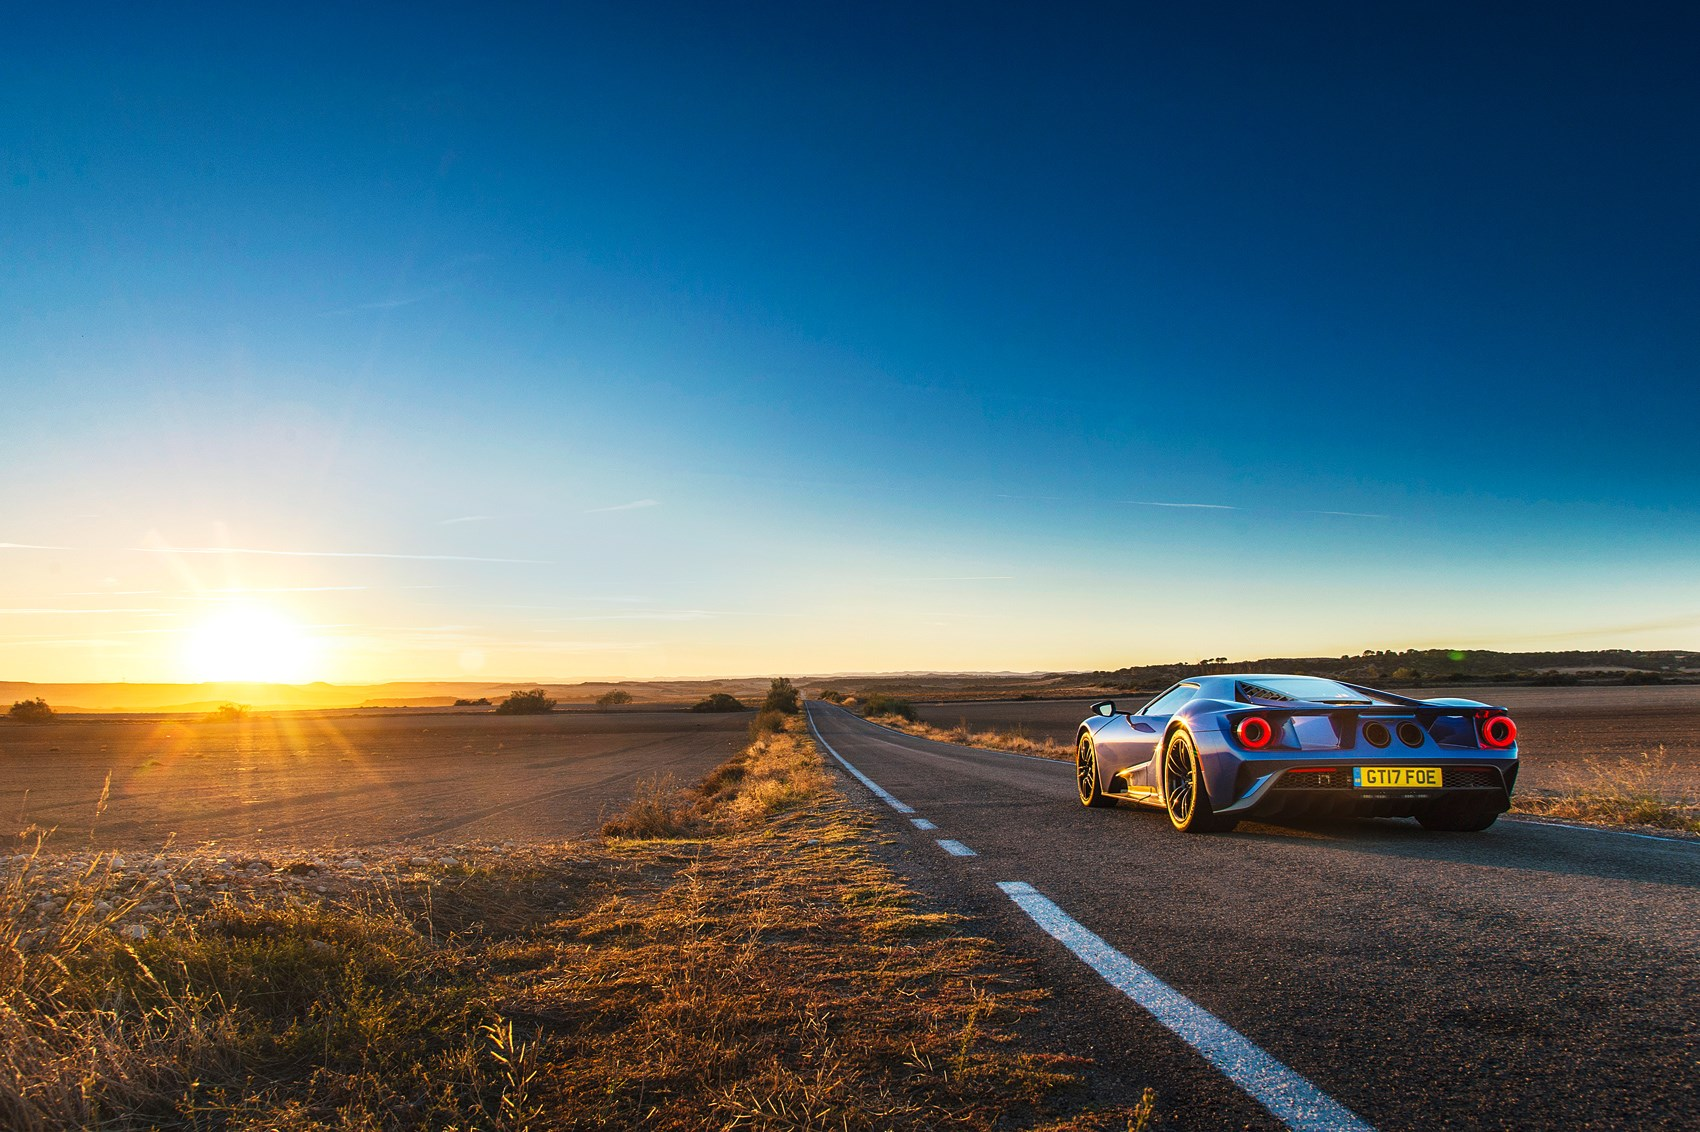 Day of reckoning: Ford GT road car vs GTE LM racer | CAR Magazine